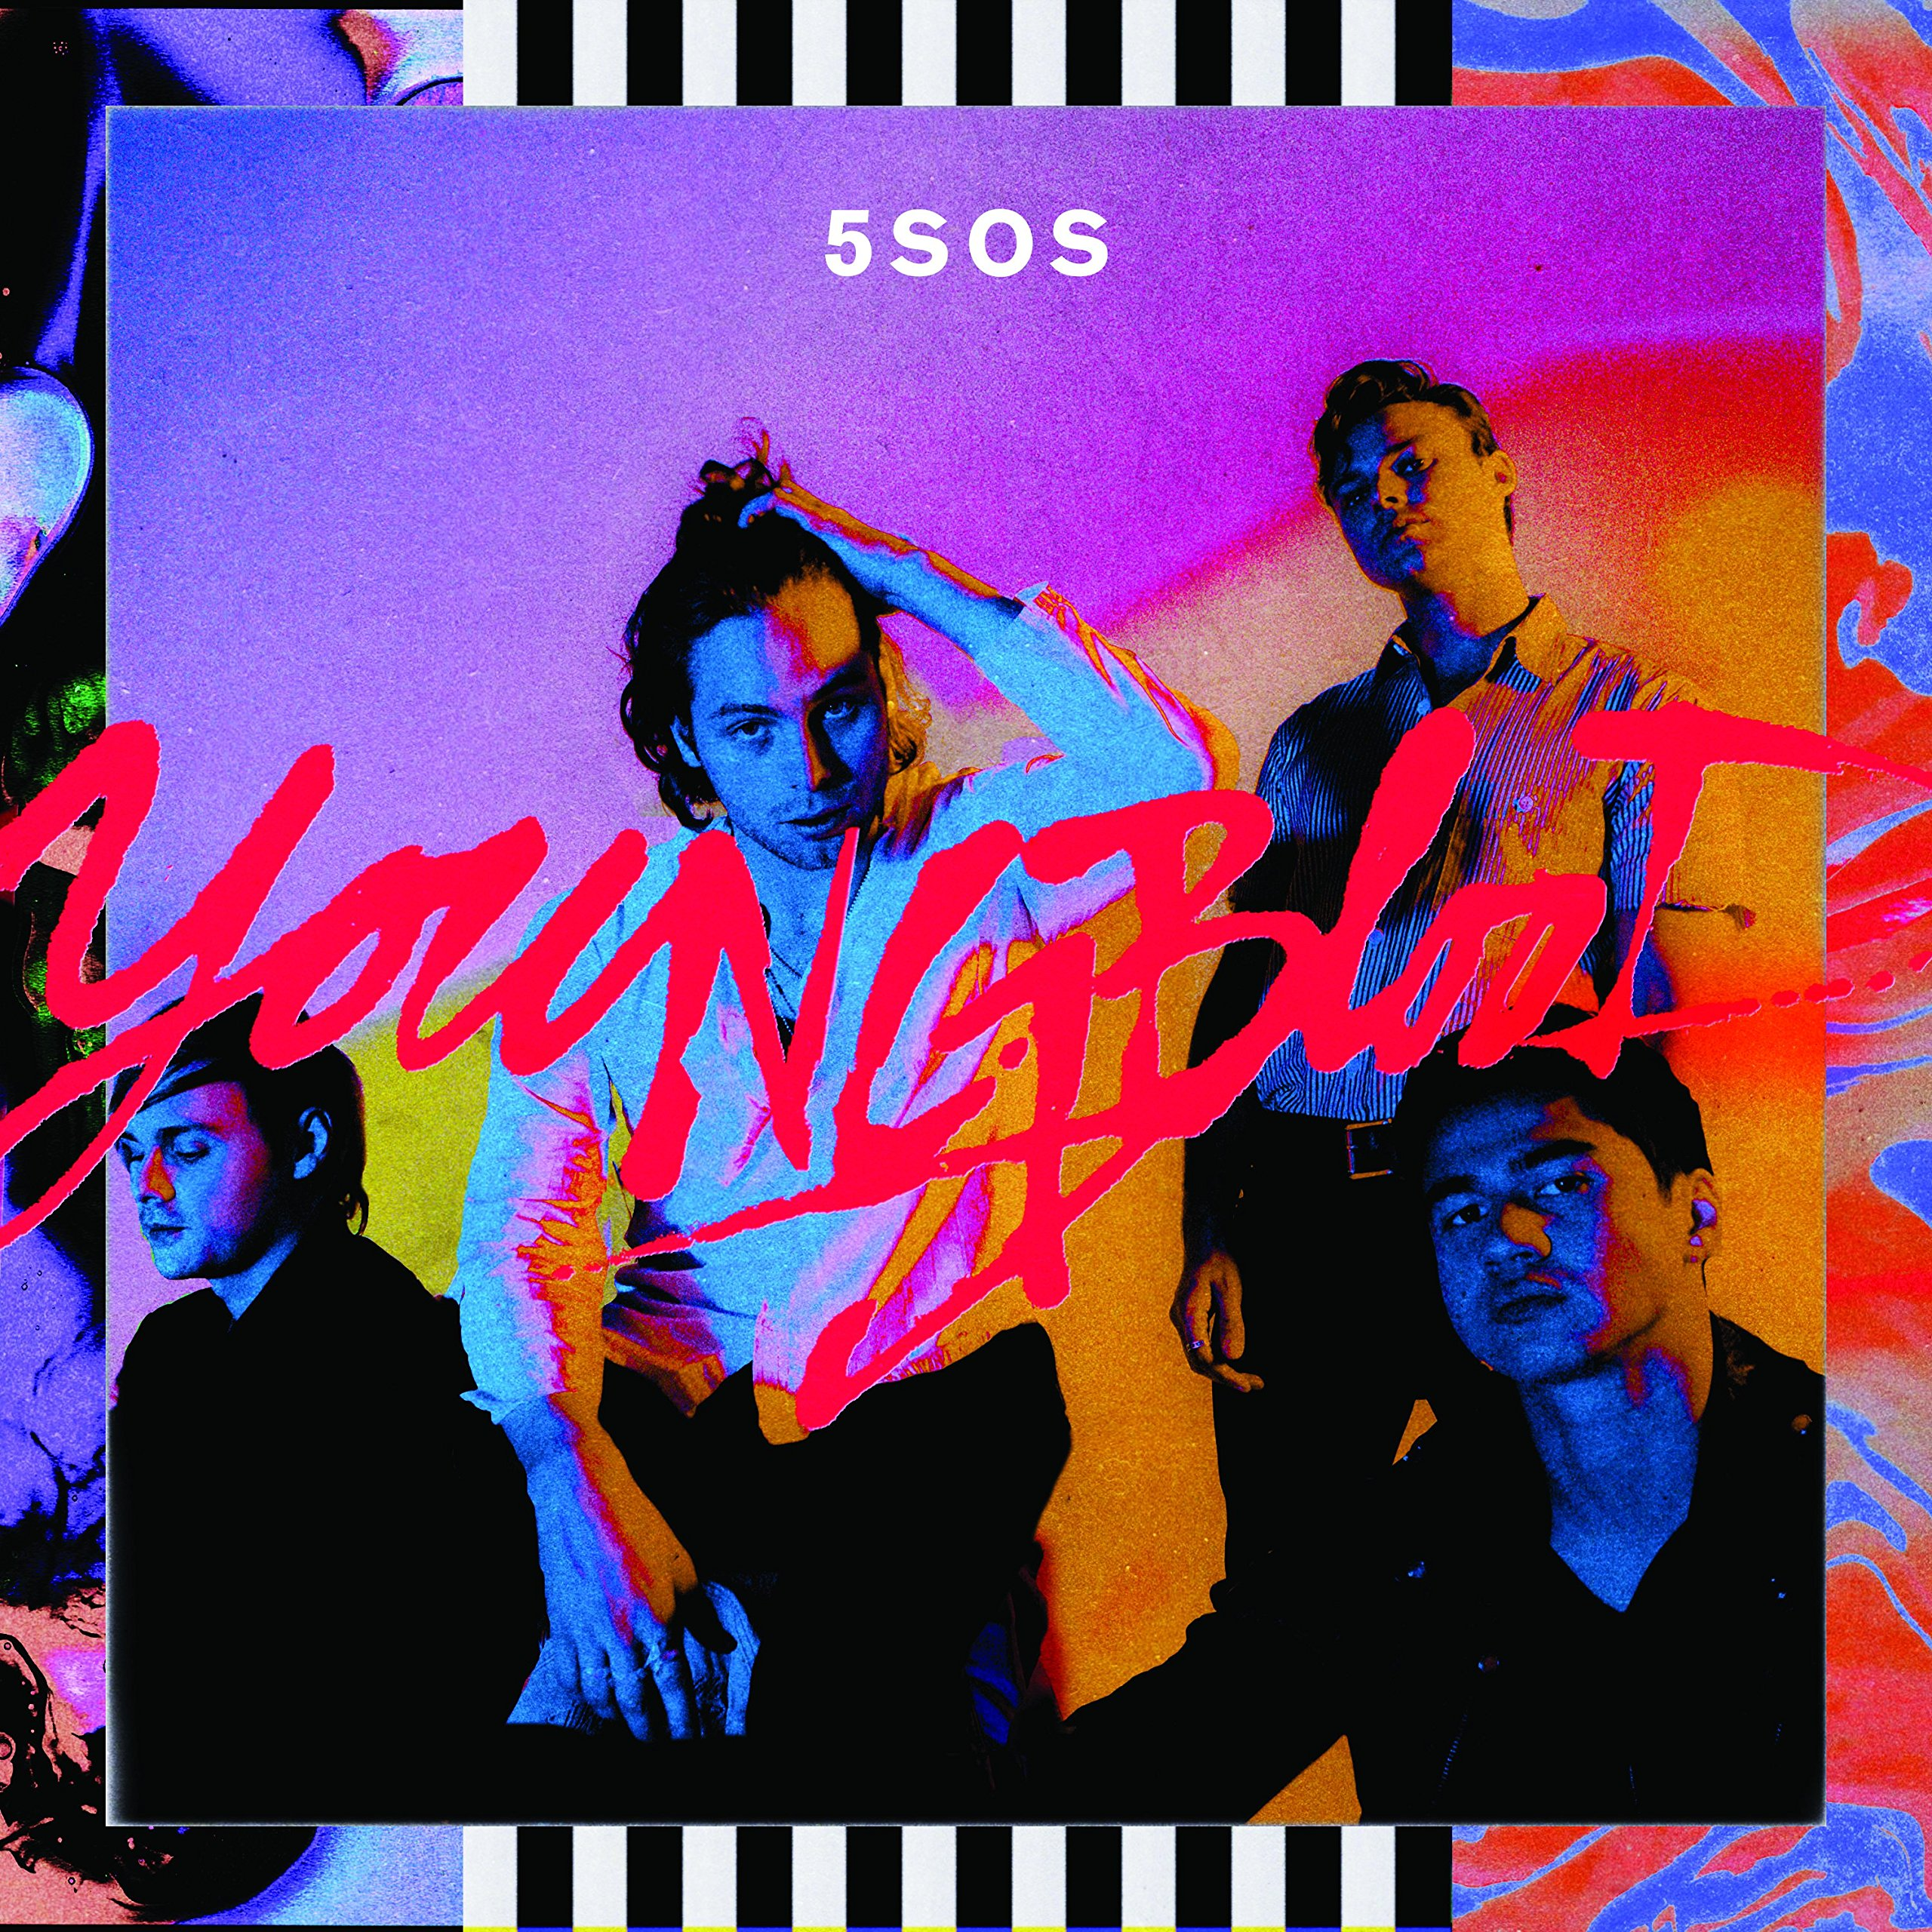 CD : 5 Seconds of Summer - Youngblood (Clean Version)